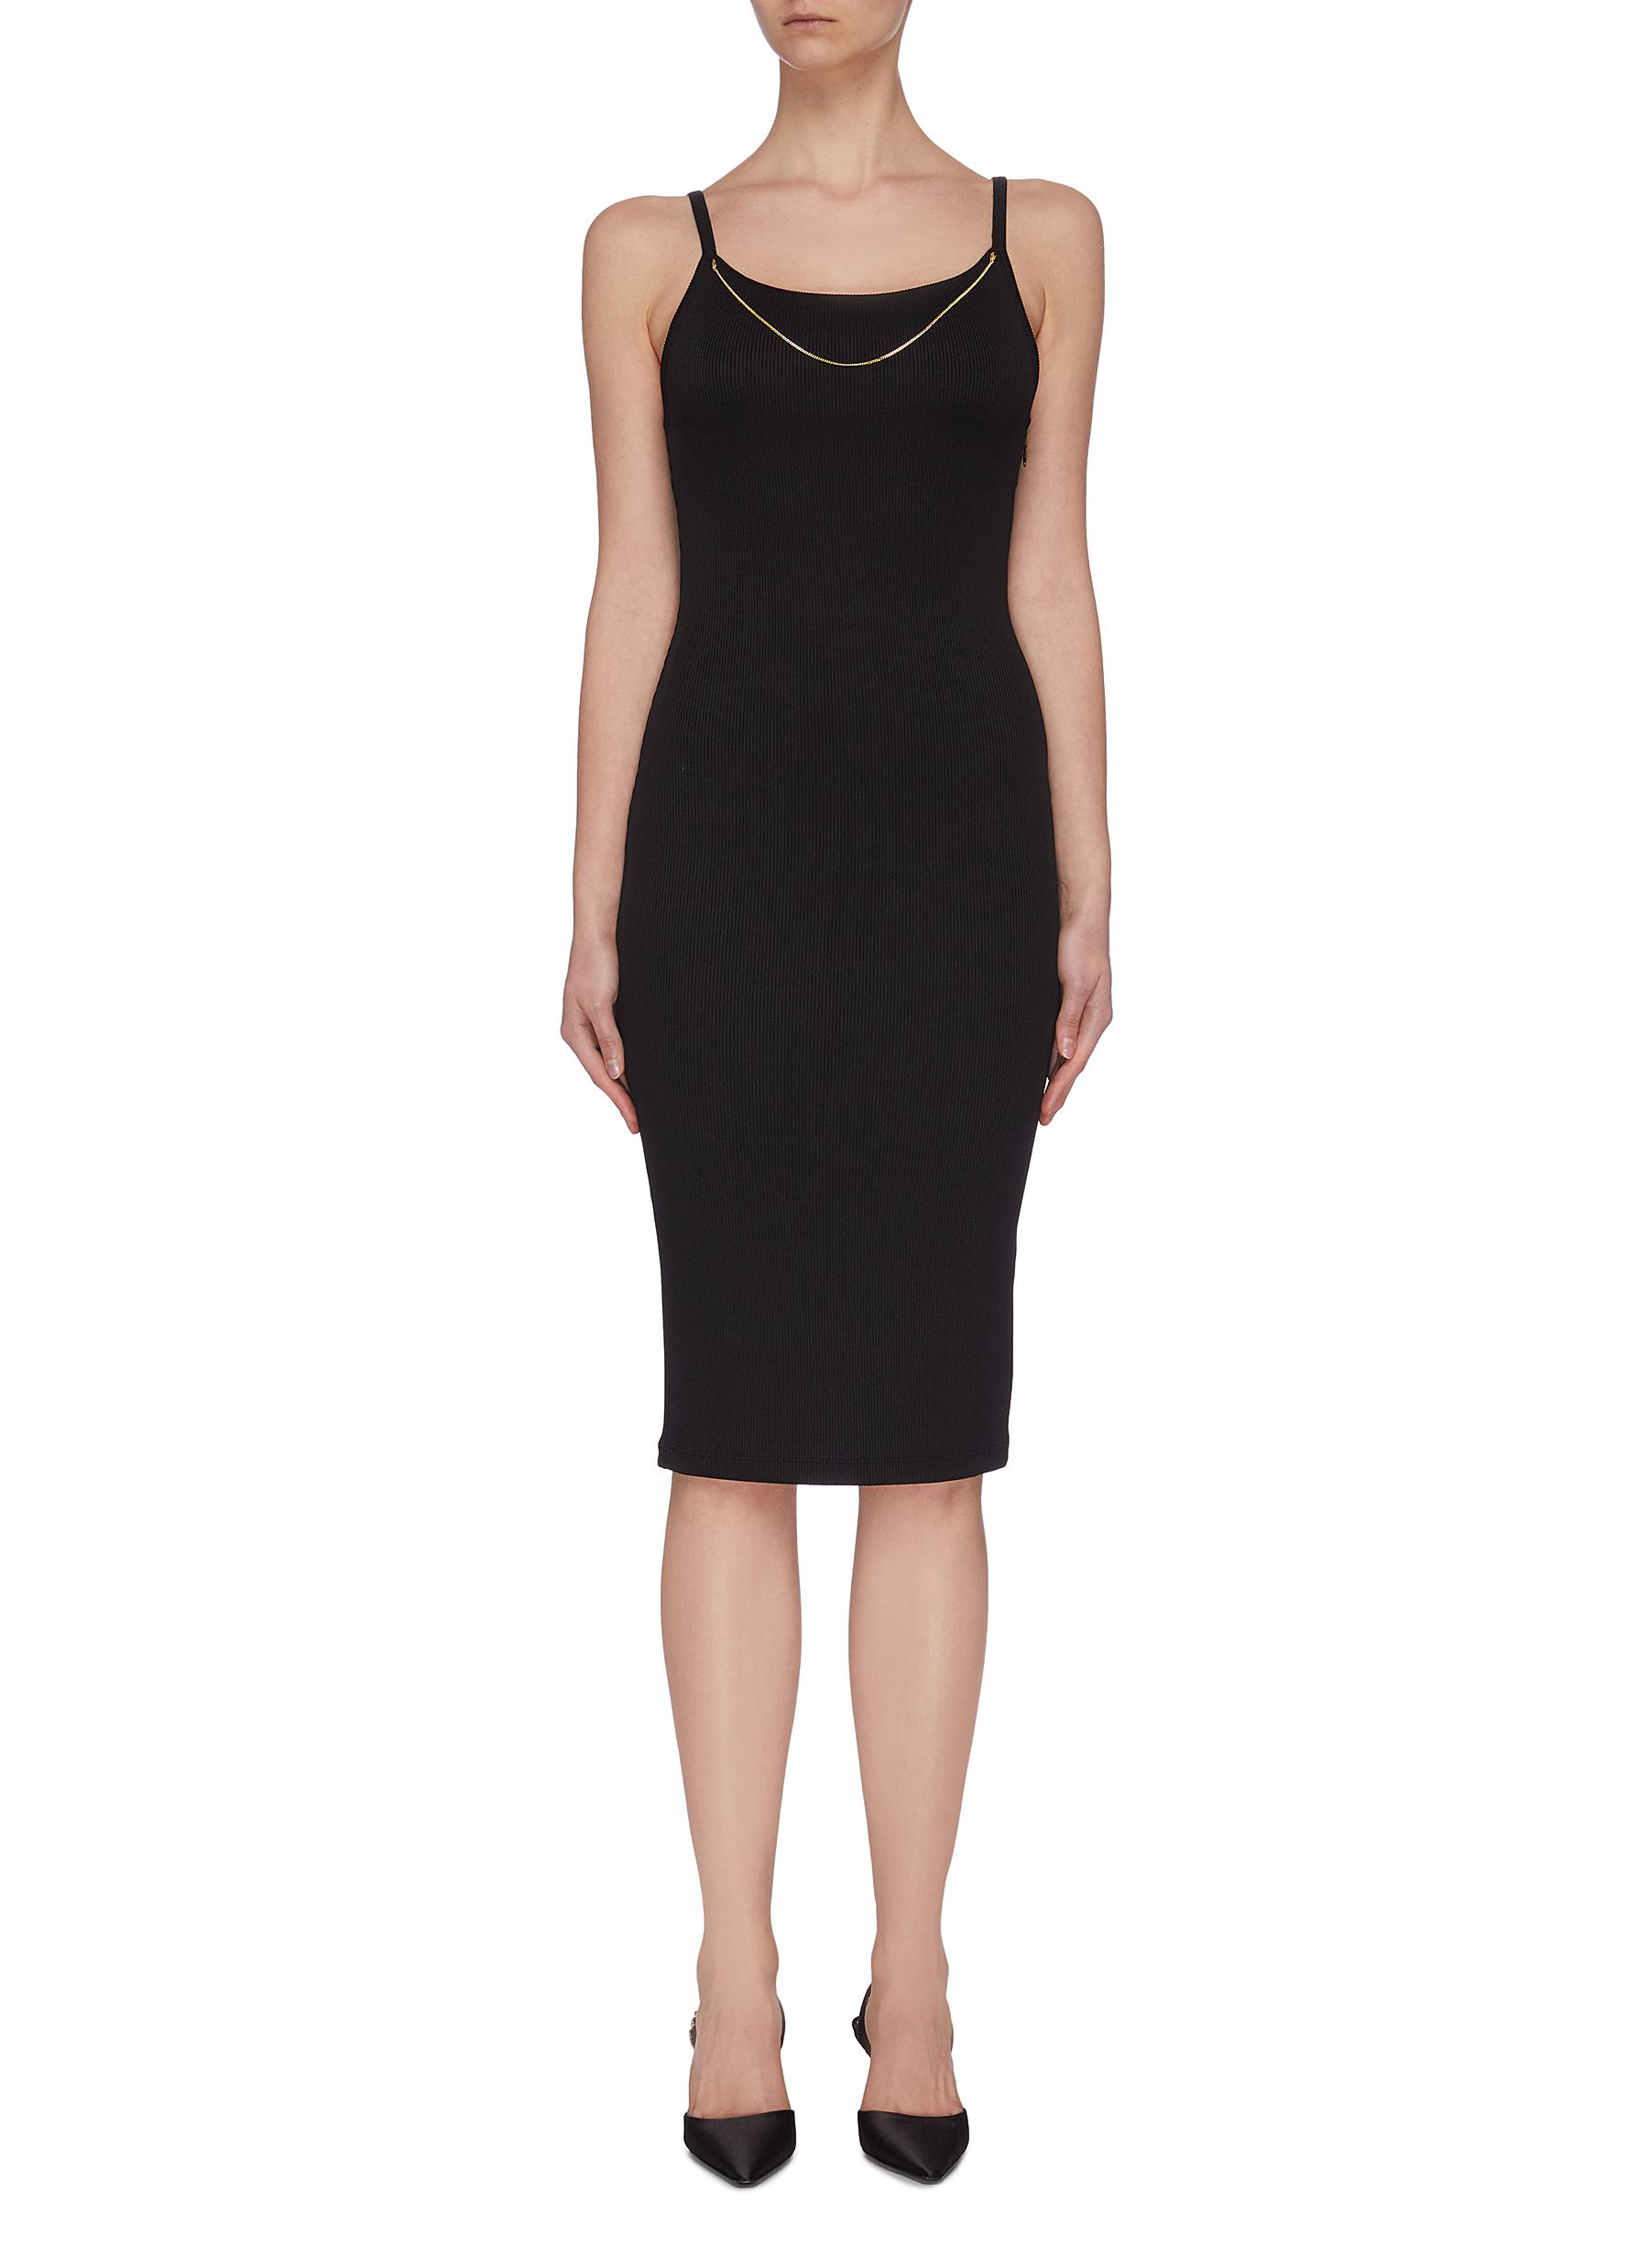 Buy Alexanderwang.T Dresses 'Bodycon' Chain detail rib knit slip on dress